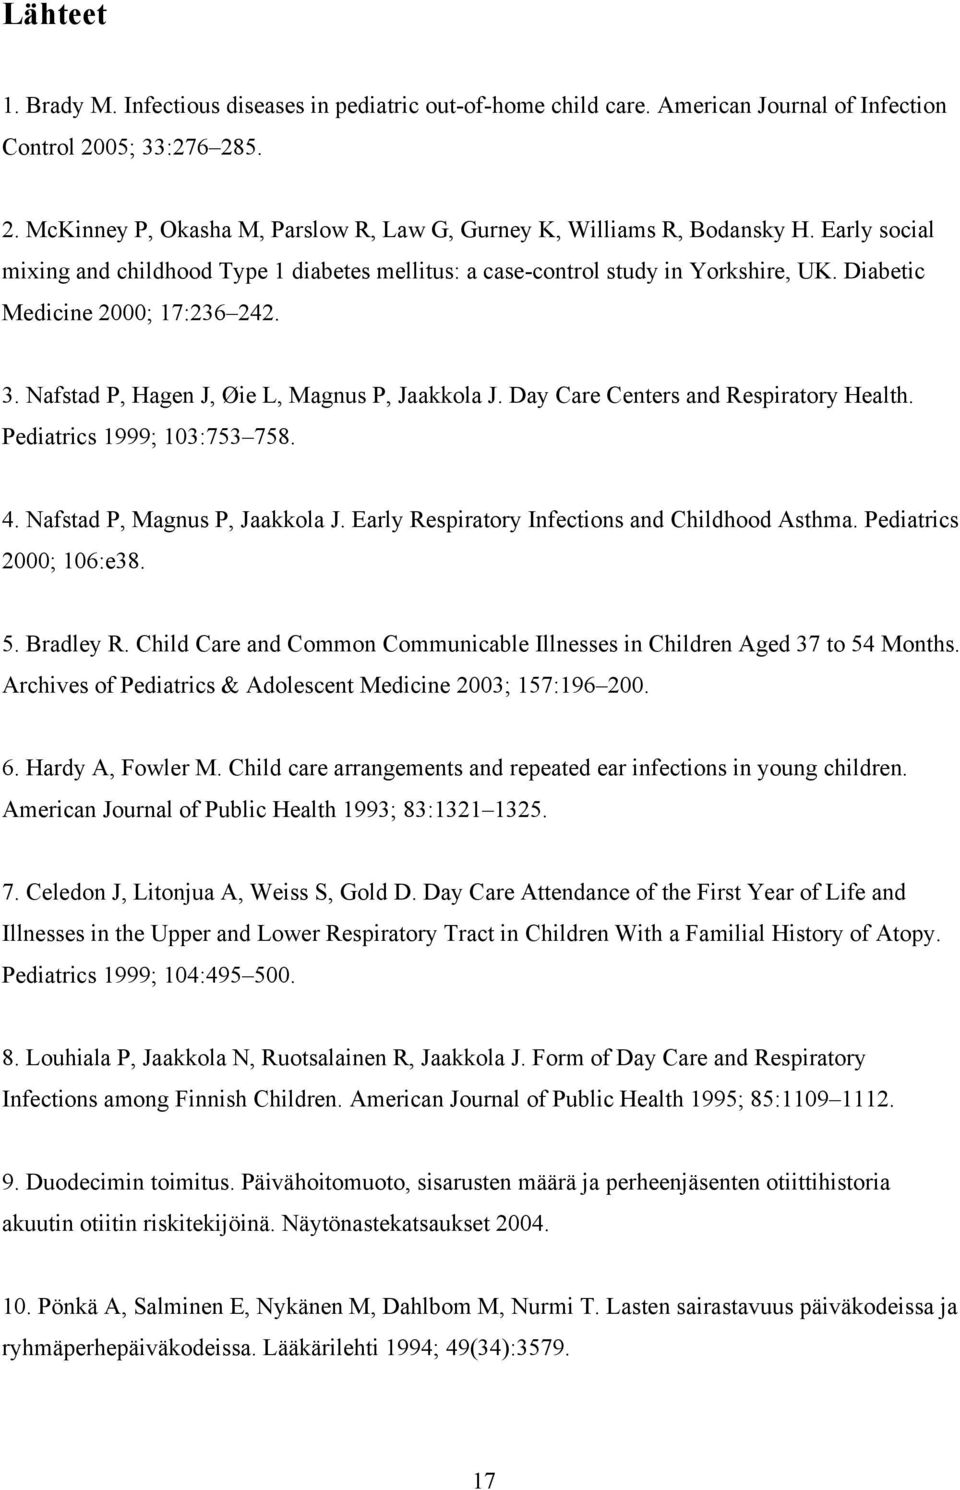 Day Care Centers and Respiratory Health. Pediatrics 1999; 103:753 758. 4. Nafstad P, Magnus P, Jaakkola J. Early Respiratory Infections and Childhood Asthma. Pediatrics 2000; 106:e38. 5. Bradley R.